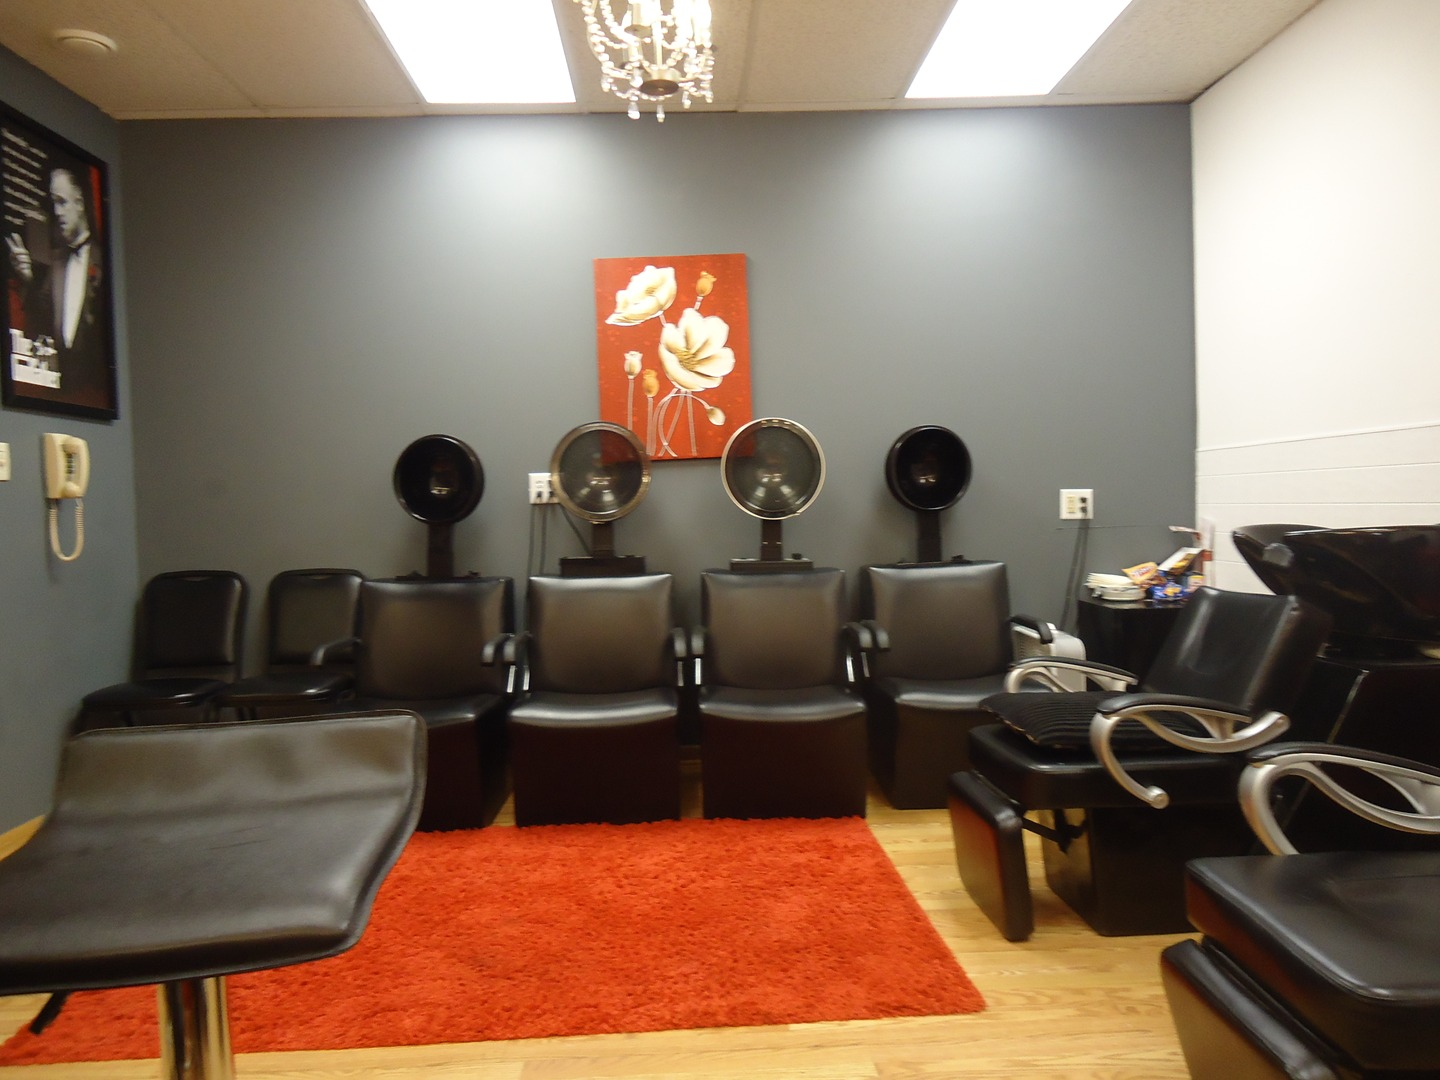 How do you find salon spaces for rent near you?